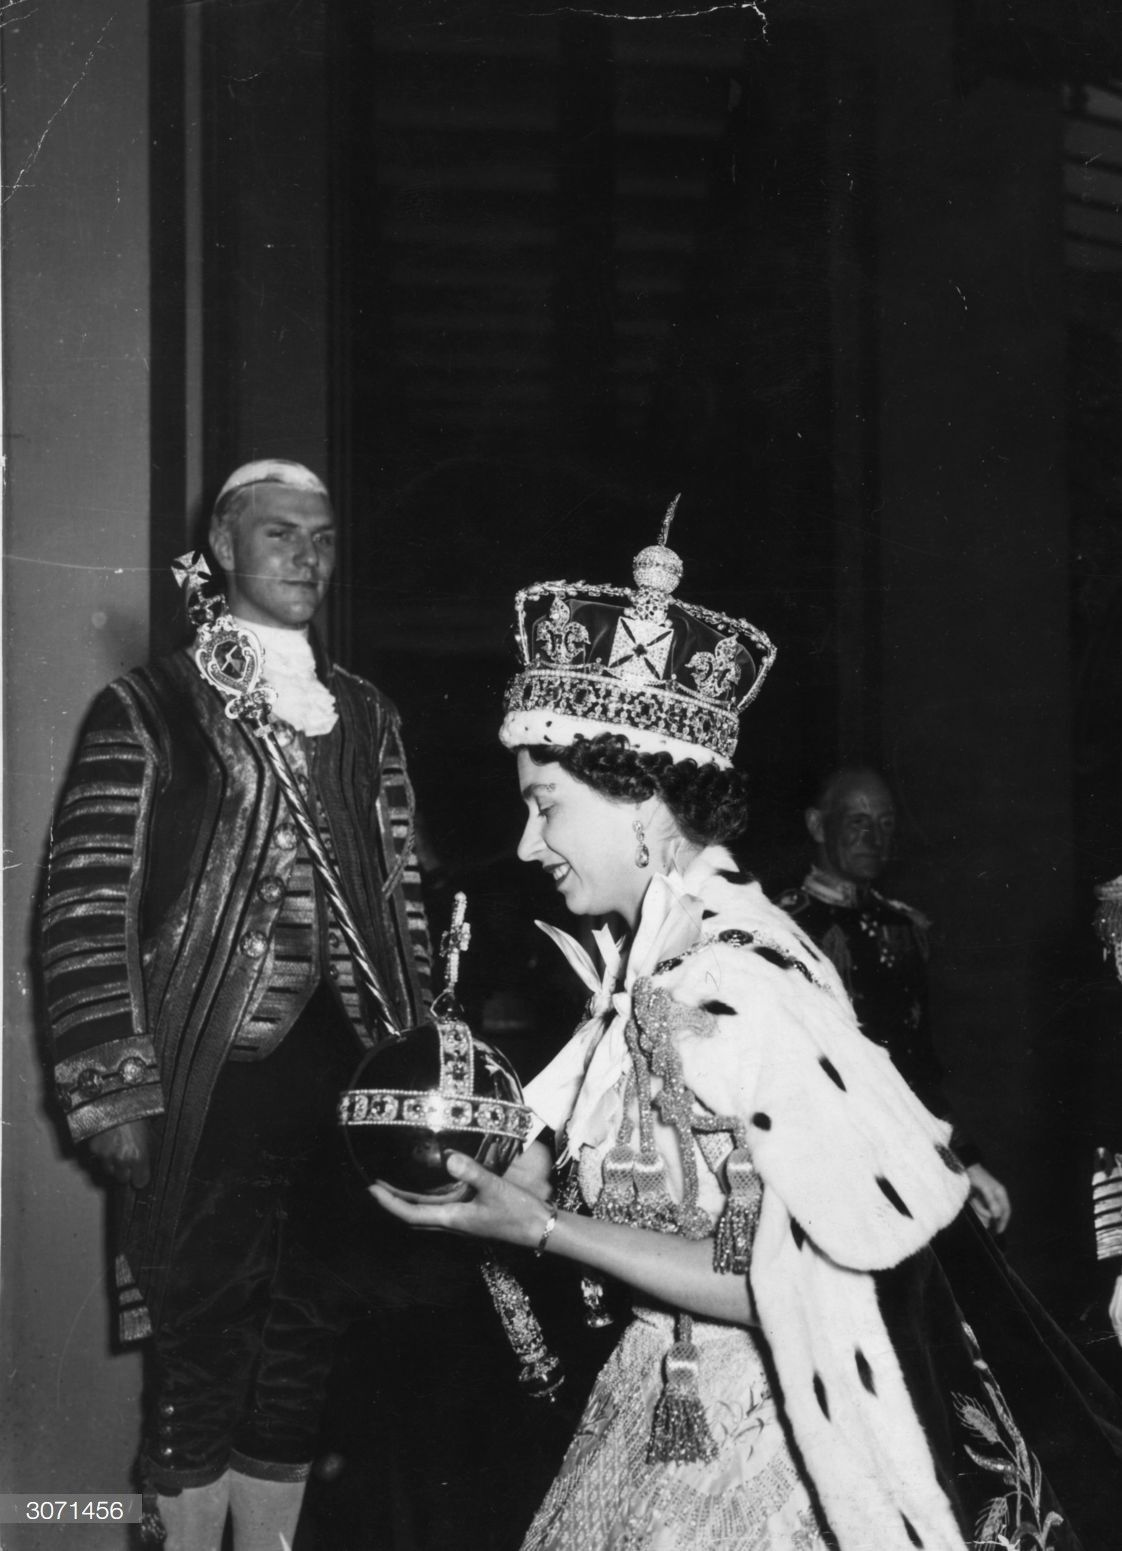 Queen Elizabeth II, wearing the Imperial State crown and carrying the Orb and Sceptre, returns to Buckingham Palace. | Source: Getty Images